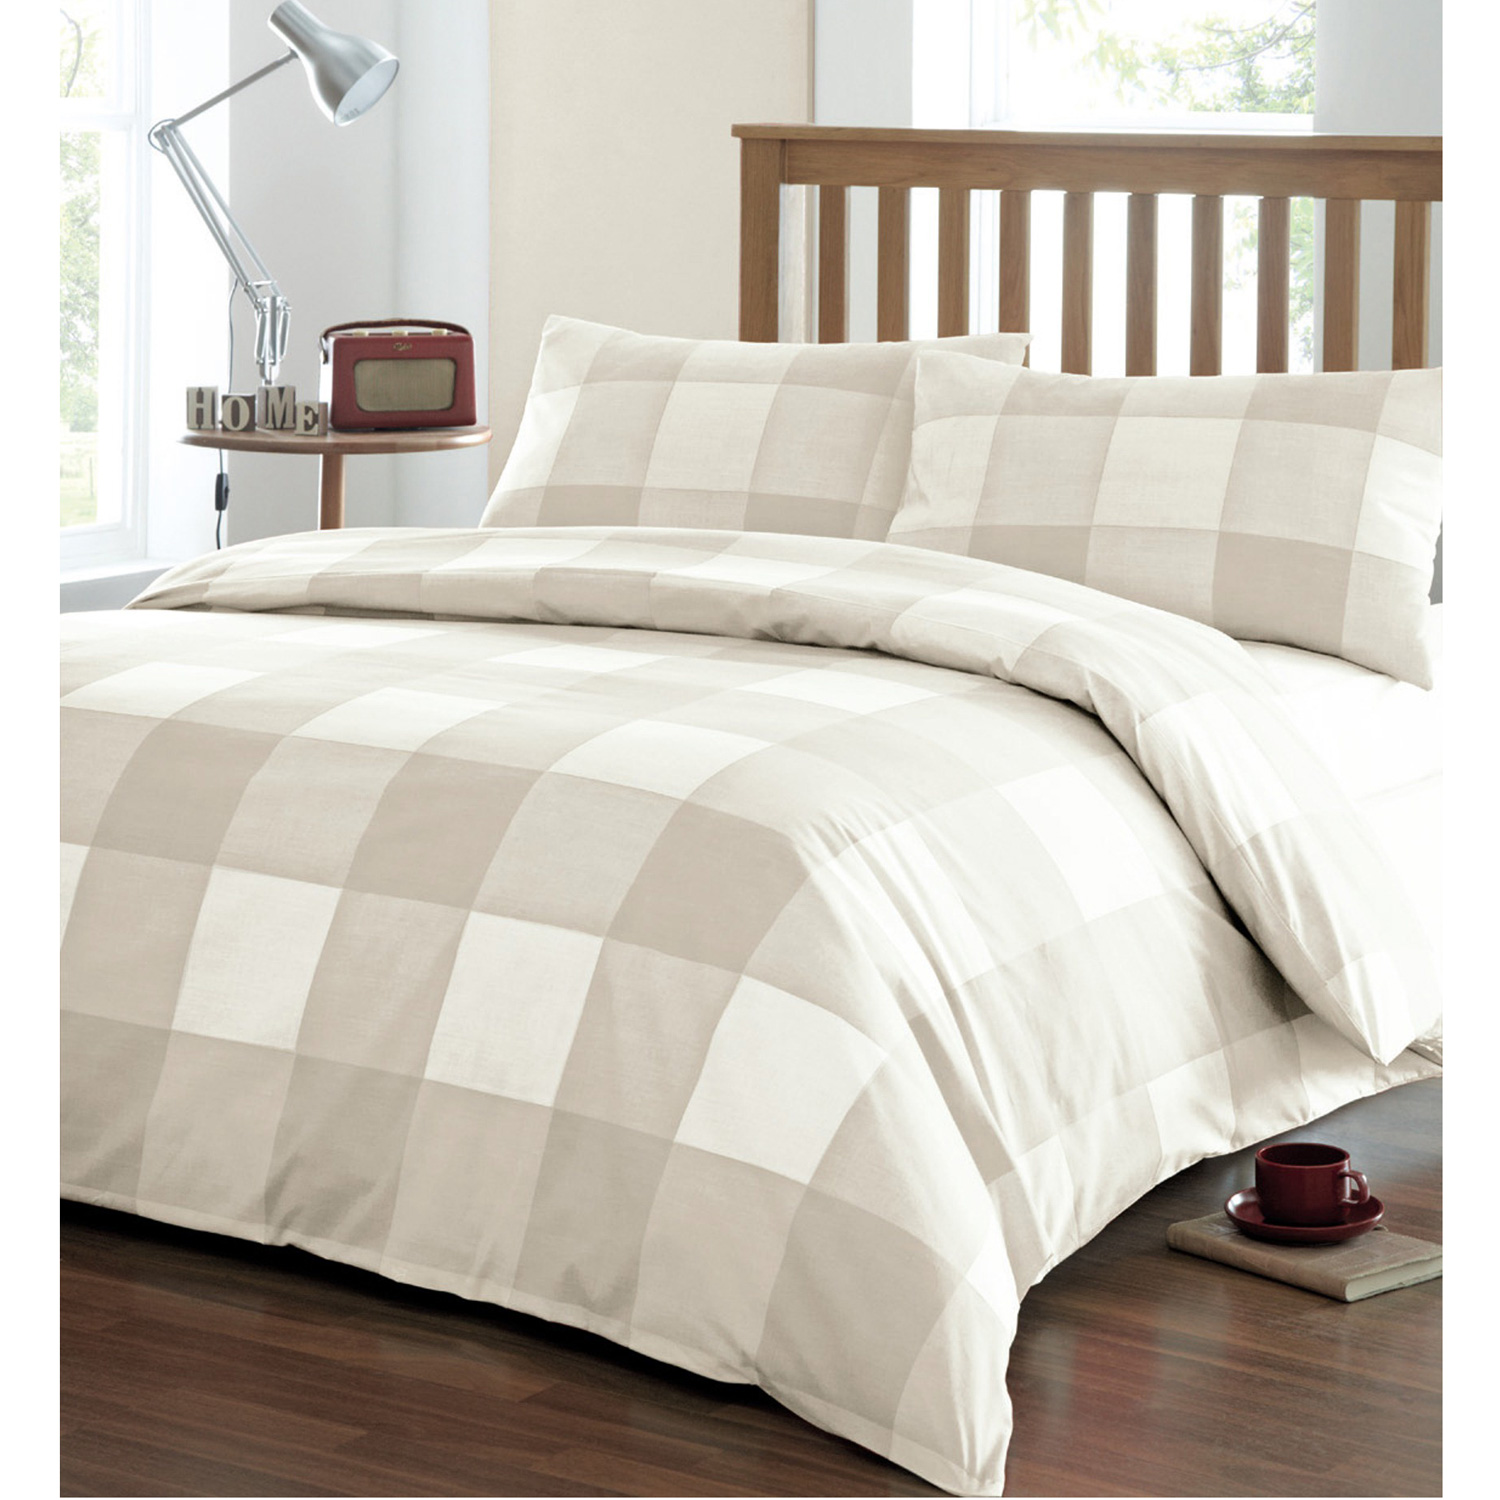 Bedroom Comfortable Queen Duvet Covers For Chic Bedroom